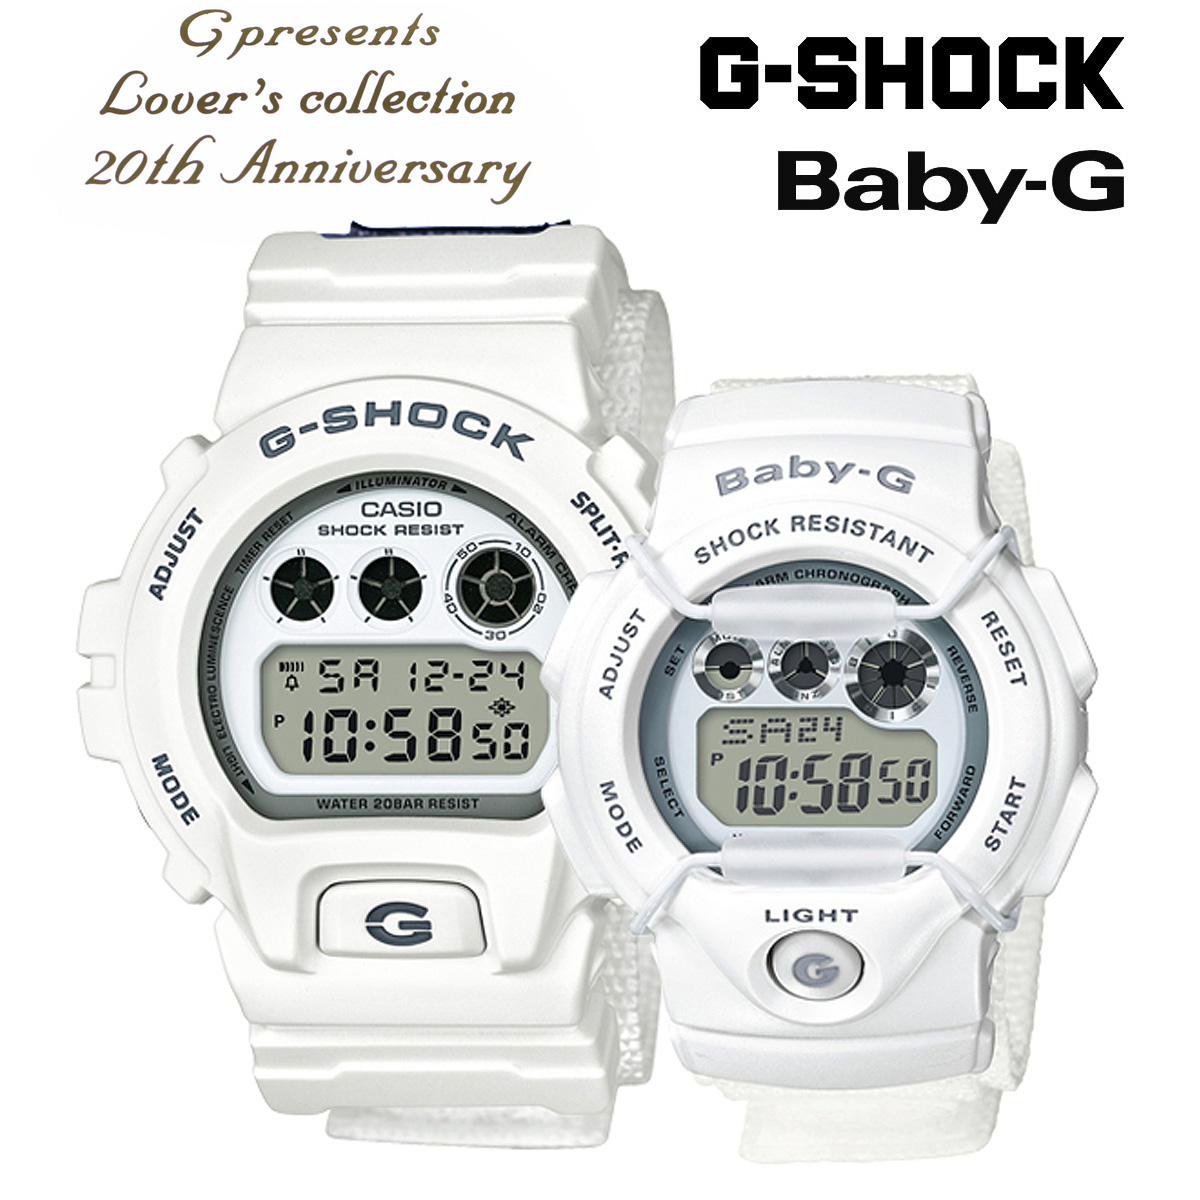 d8cecd5c8937 Sugar Online Shop: CASIO watch G shock CASIO g-shock men's women's baby-g  LOV-16C-7JR G PRESENTS LOVER's COLLECTION 2016 palocci [11/18 new in stock]  ...